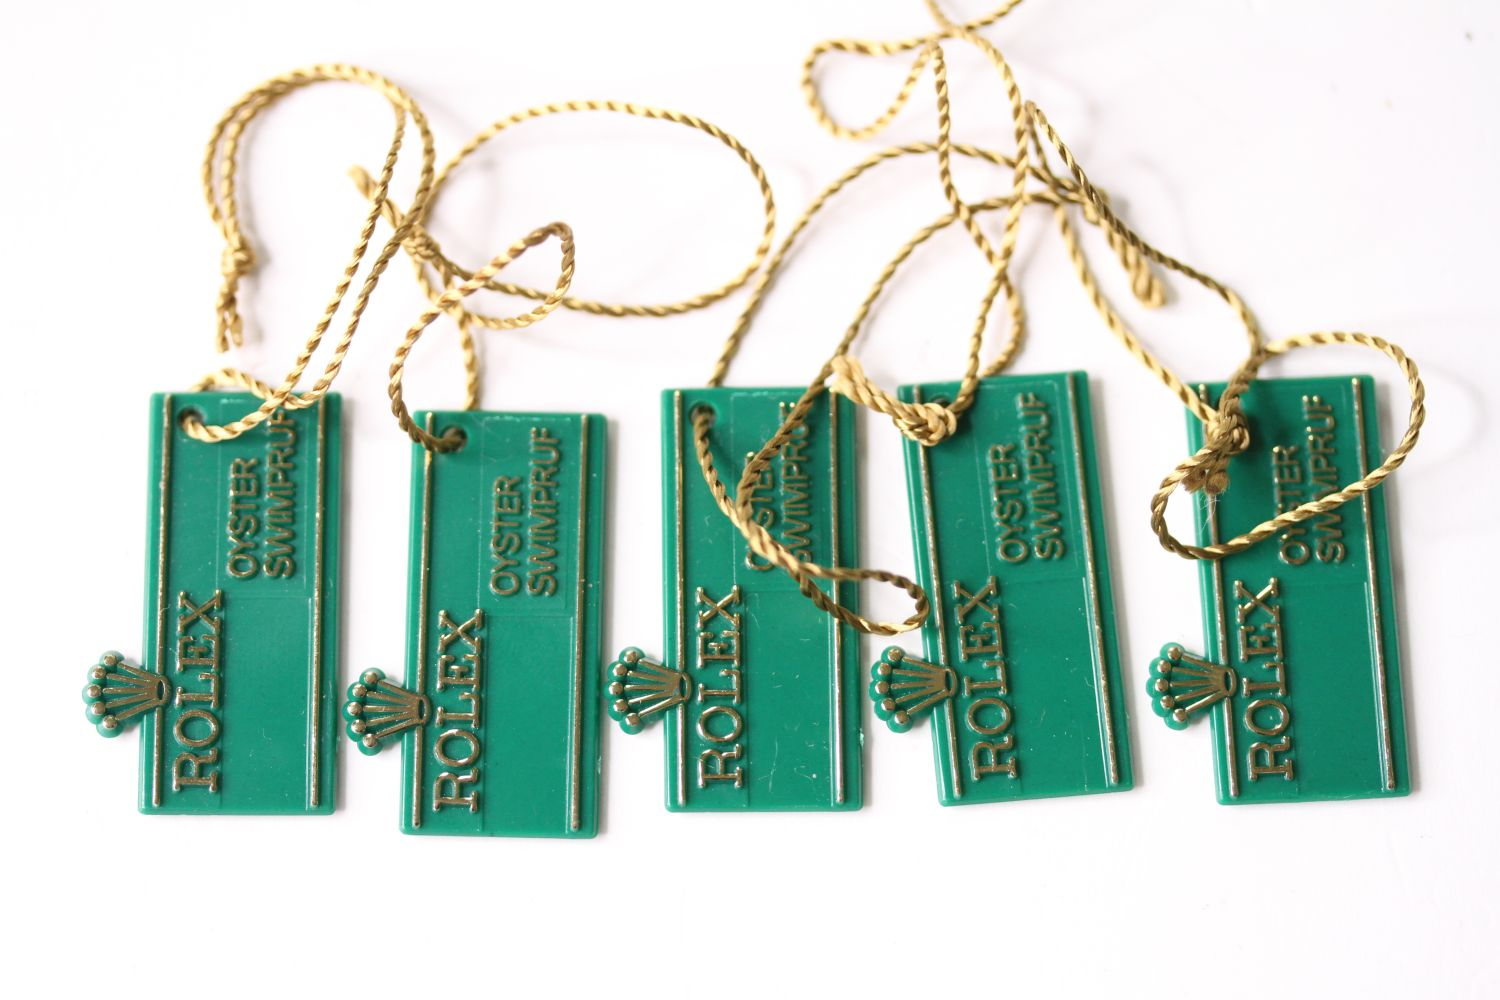 Set of NOS 1970s Rolex 'Swimpruf' swing tags for references; 6263 / 6265 / 5513 / 5512 / 1680 / 1665